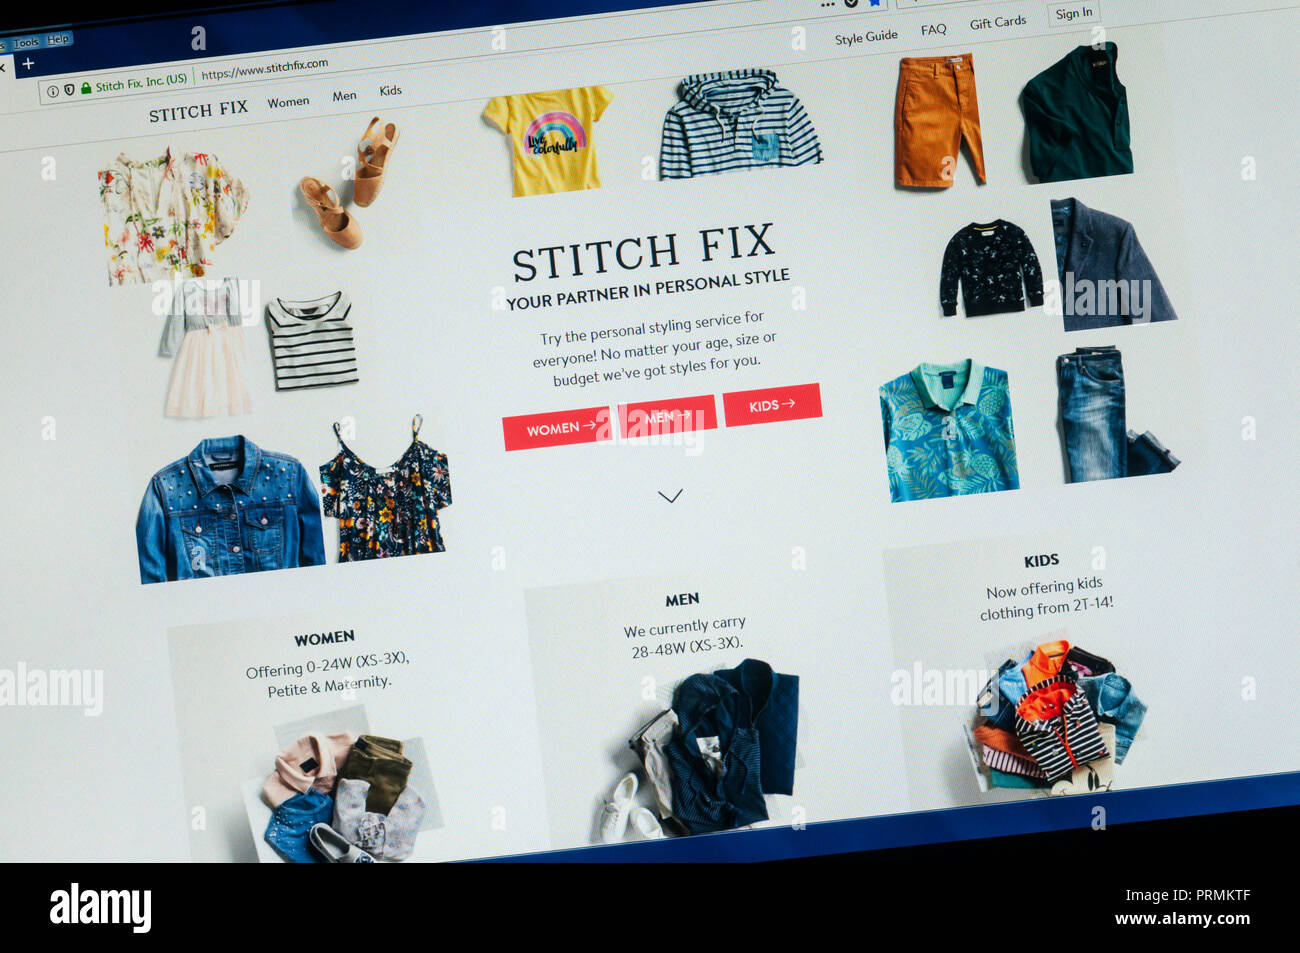 Homepage der American Clothing website Stitch beheben. Stockbild